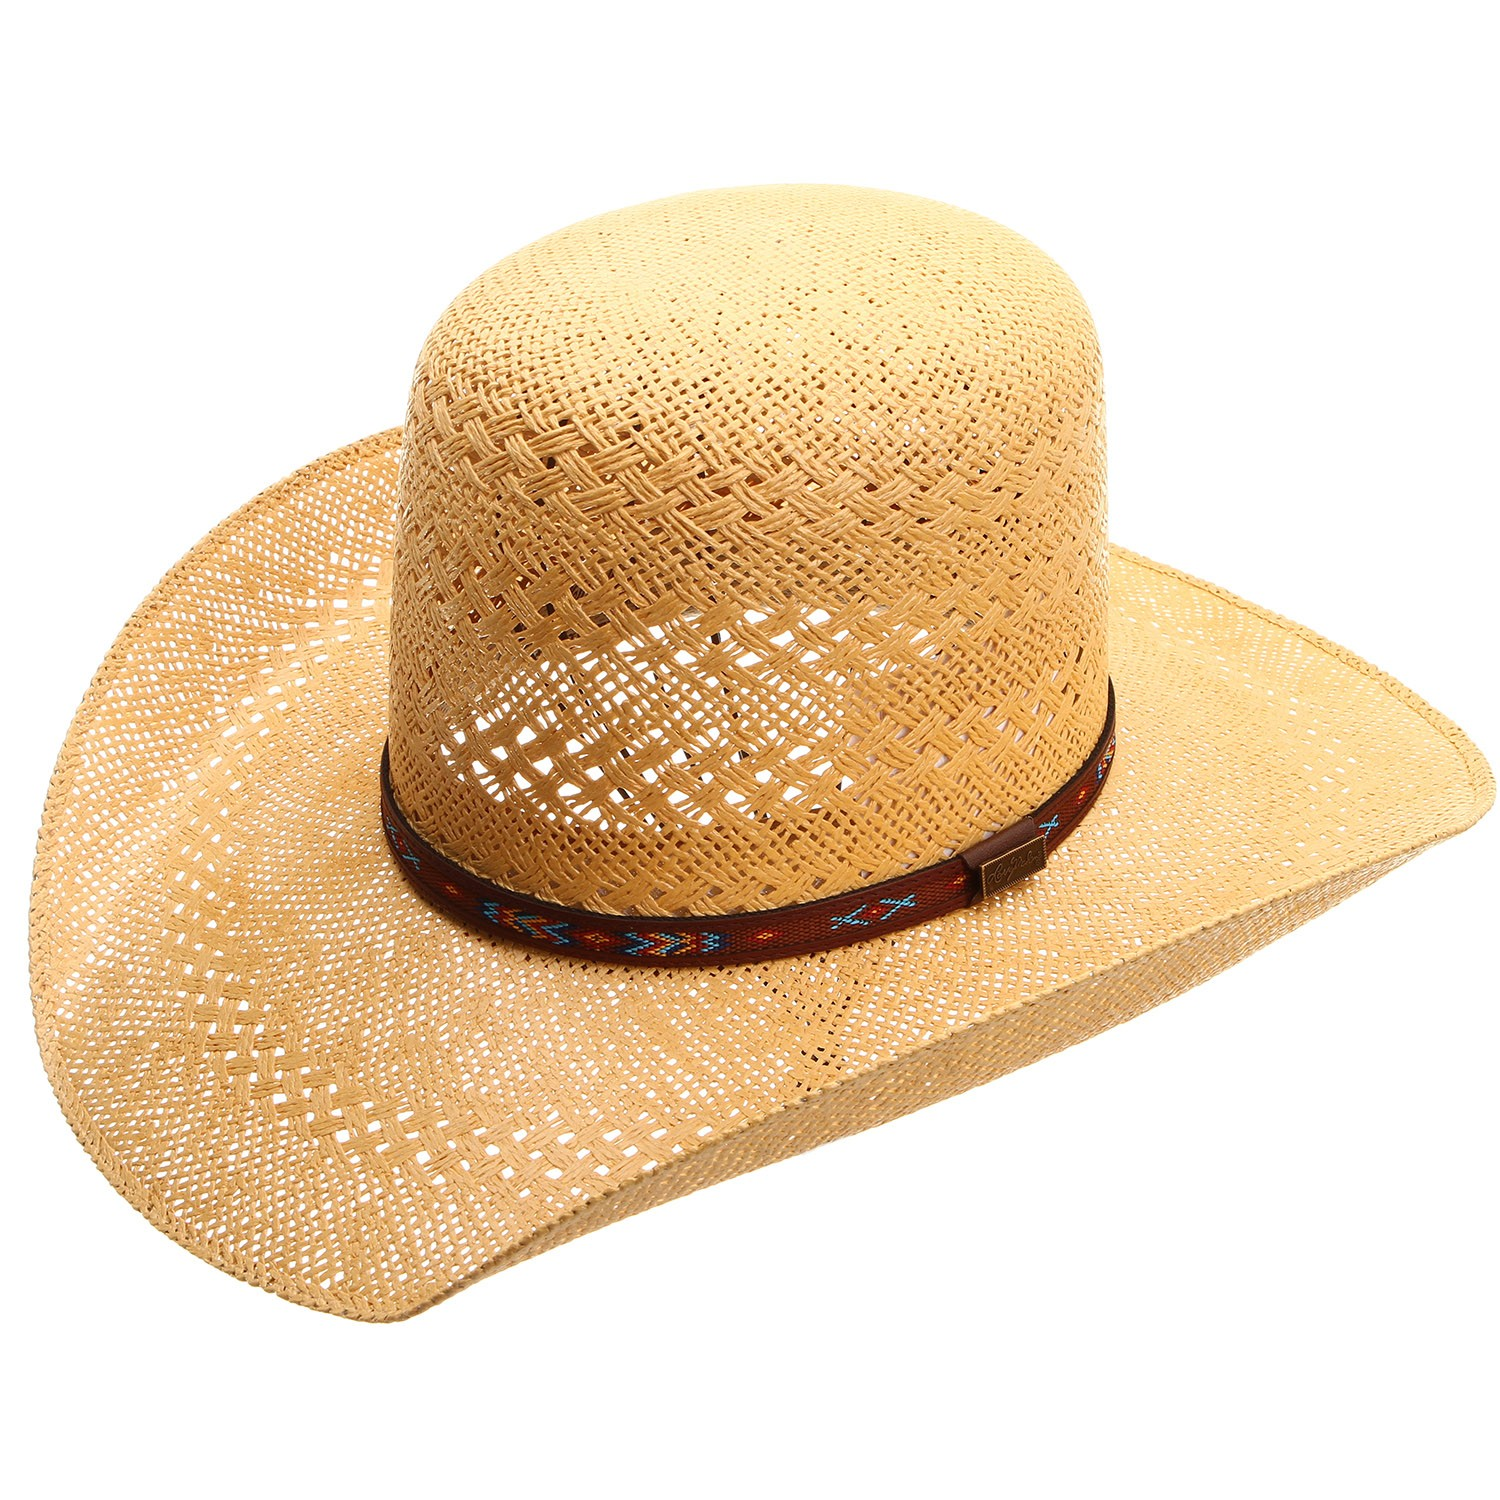 straw cowboy hats milano pima straw cowboy hat open crown YRDQUFS